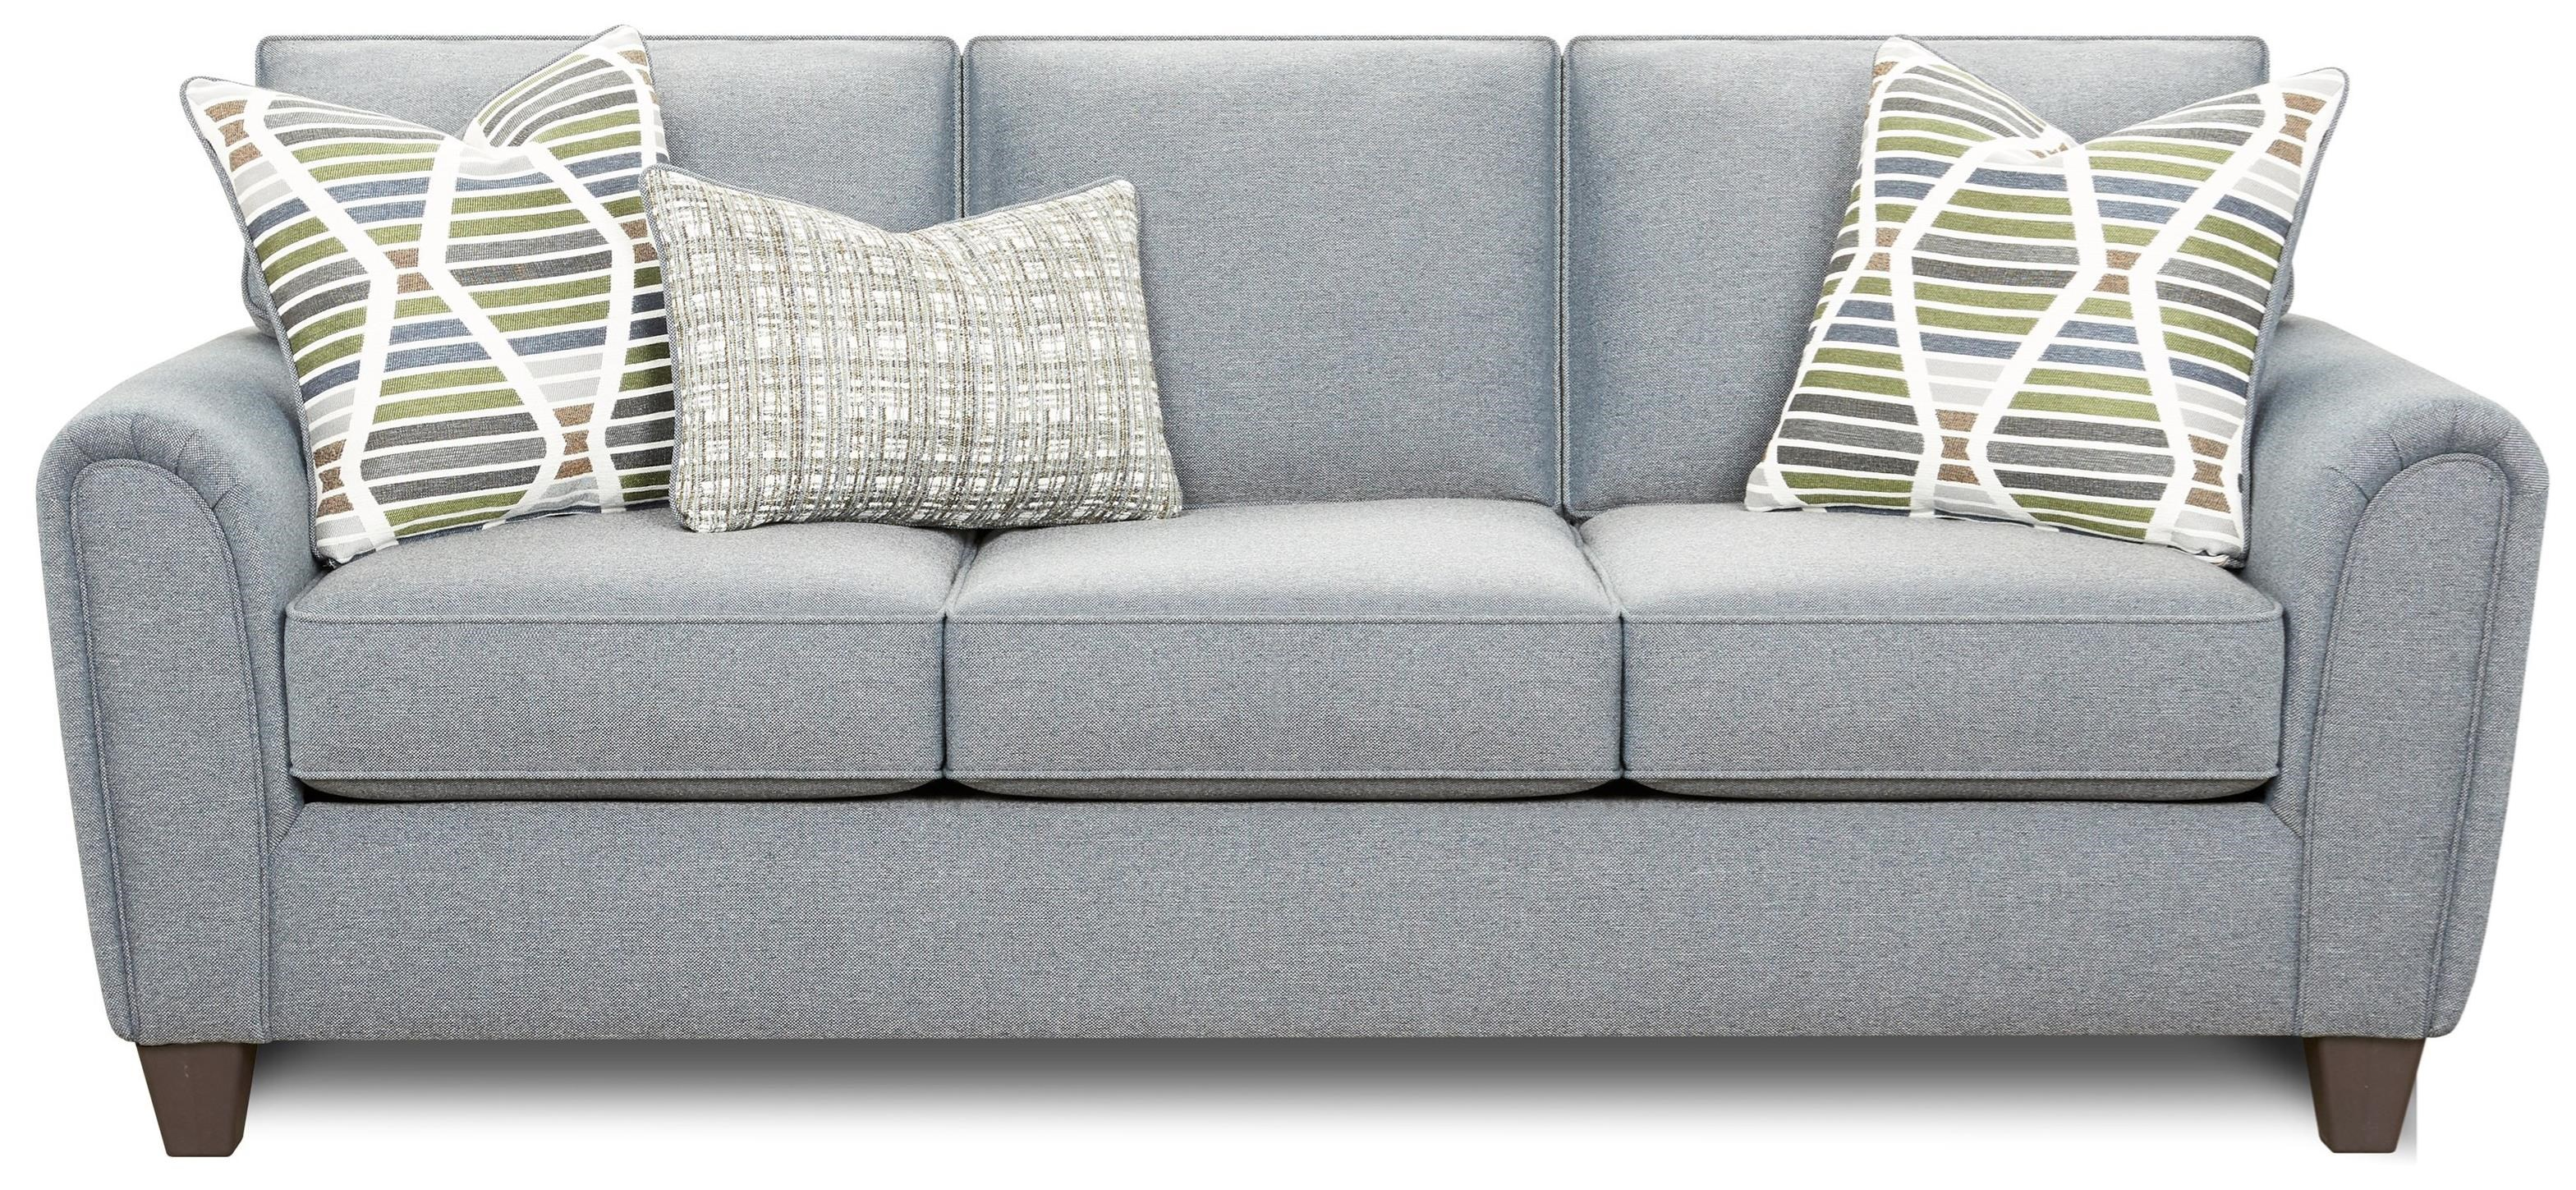 49-00 Sofa by Fusion Furniture at Wilson's Furniture